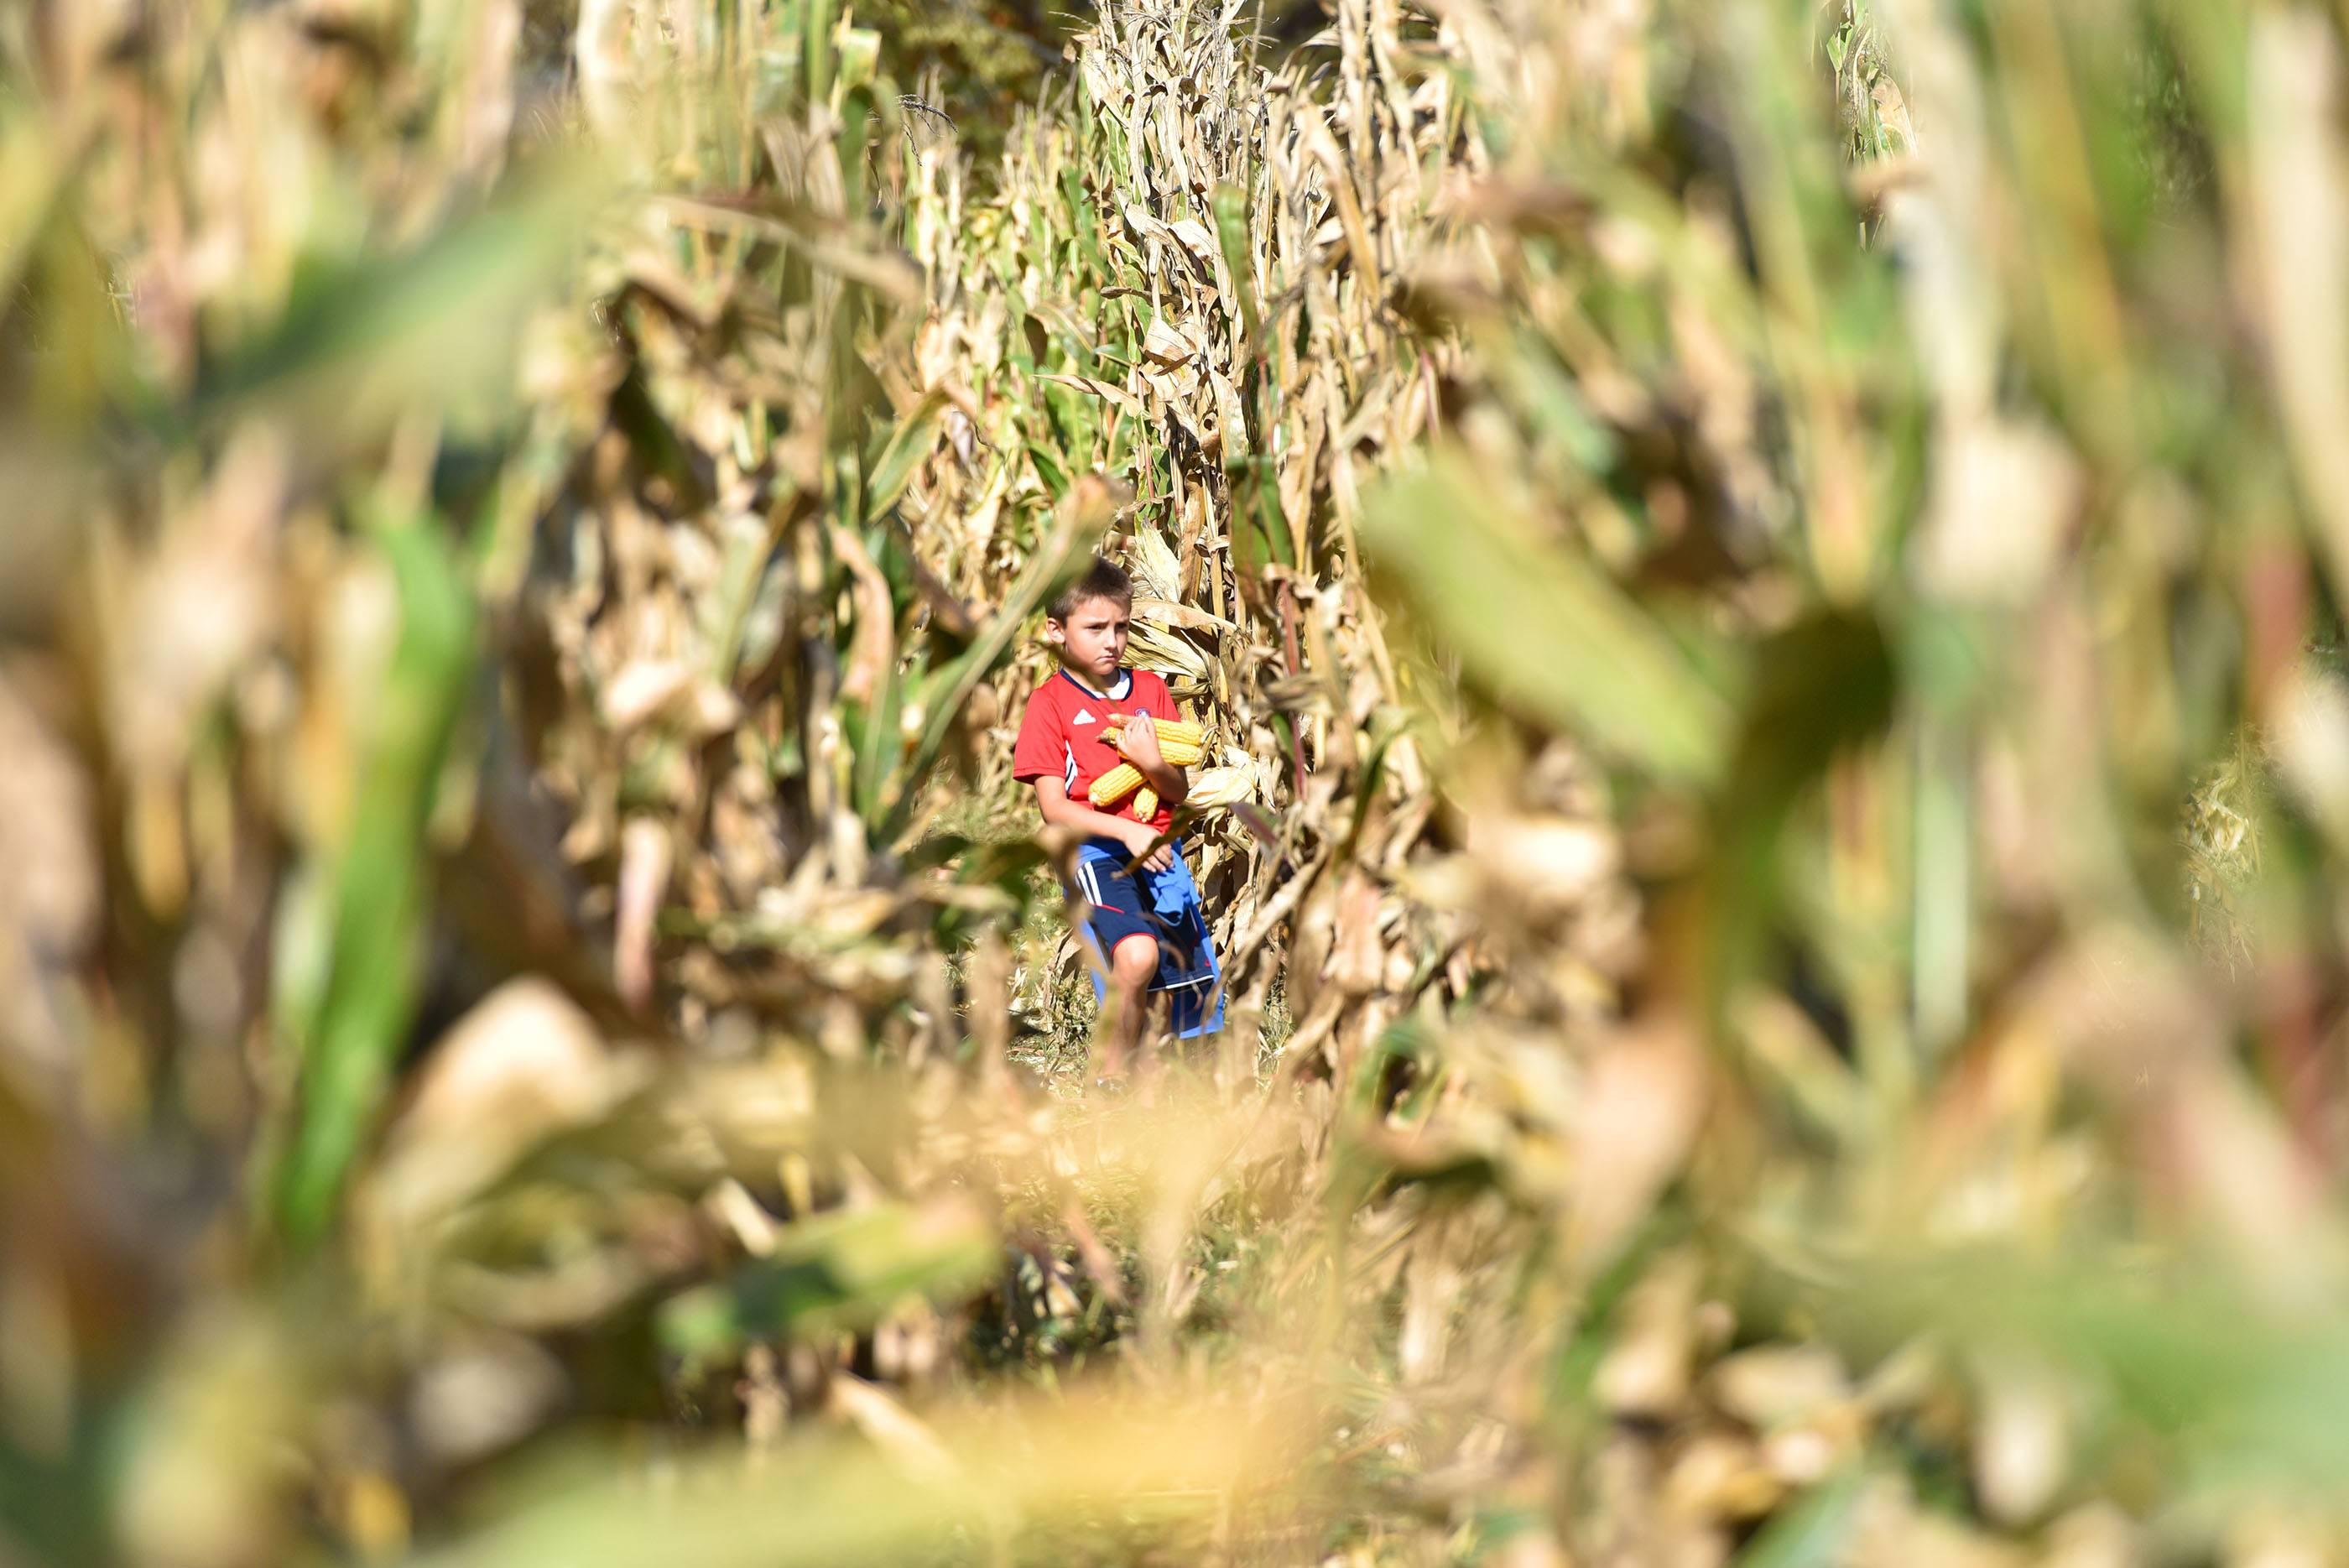 Nathan Skoric, 7, of Bartlett carries an armload of feed corn he just picked Saturday at the Kline Creek Farm near West Chicago.